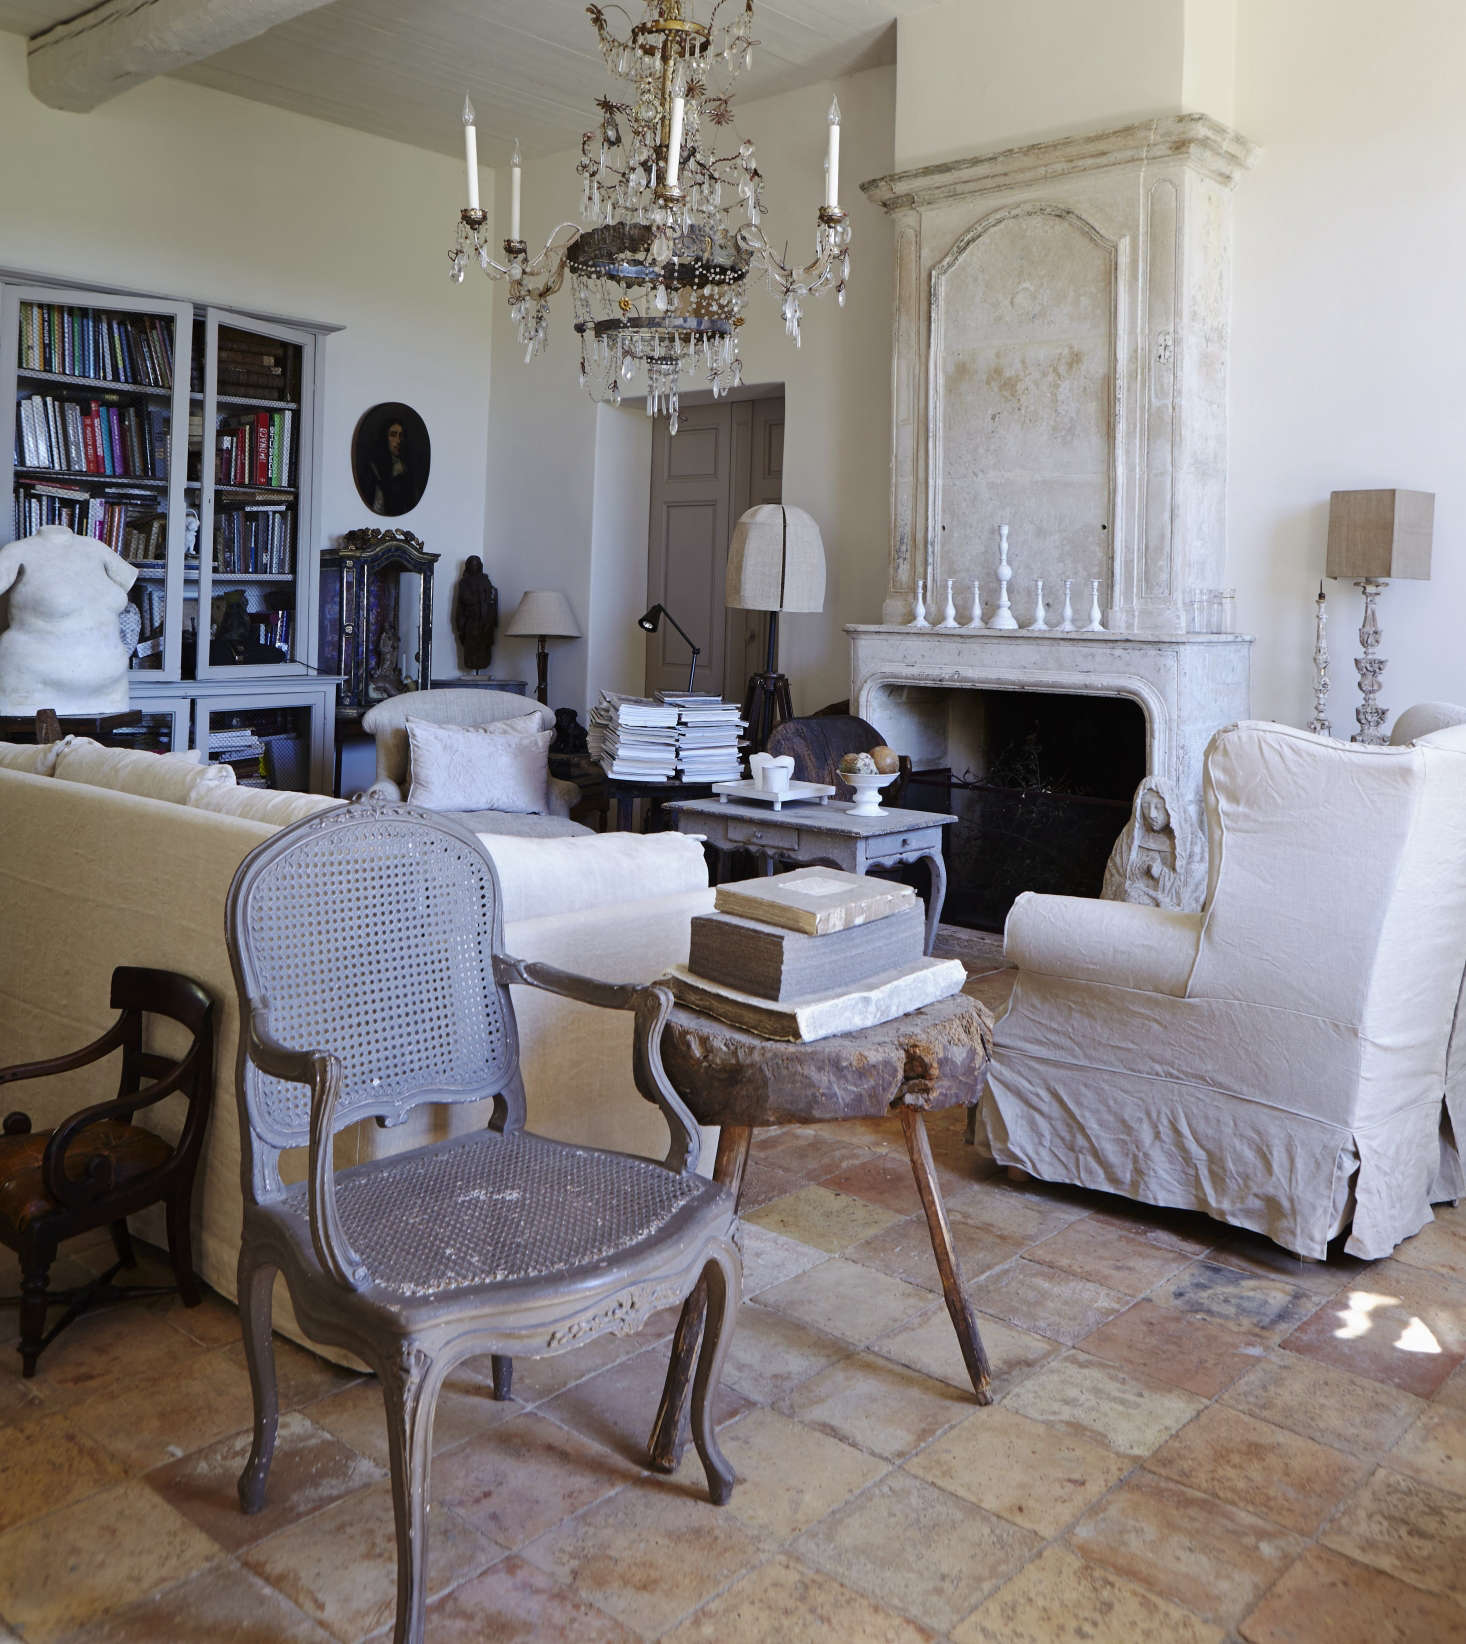 Exceptional The Living Room In The Home Of Sara Giunta And Jean Luc Charrier Of La